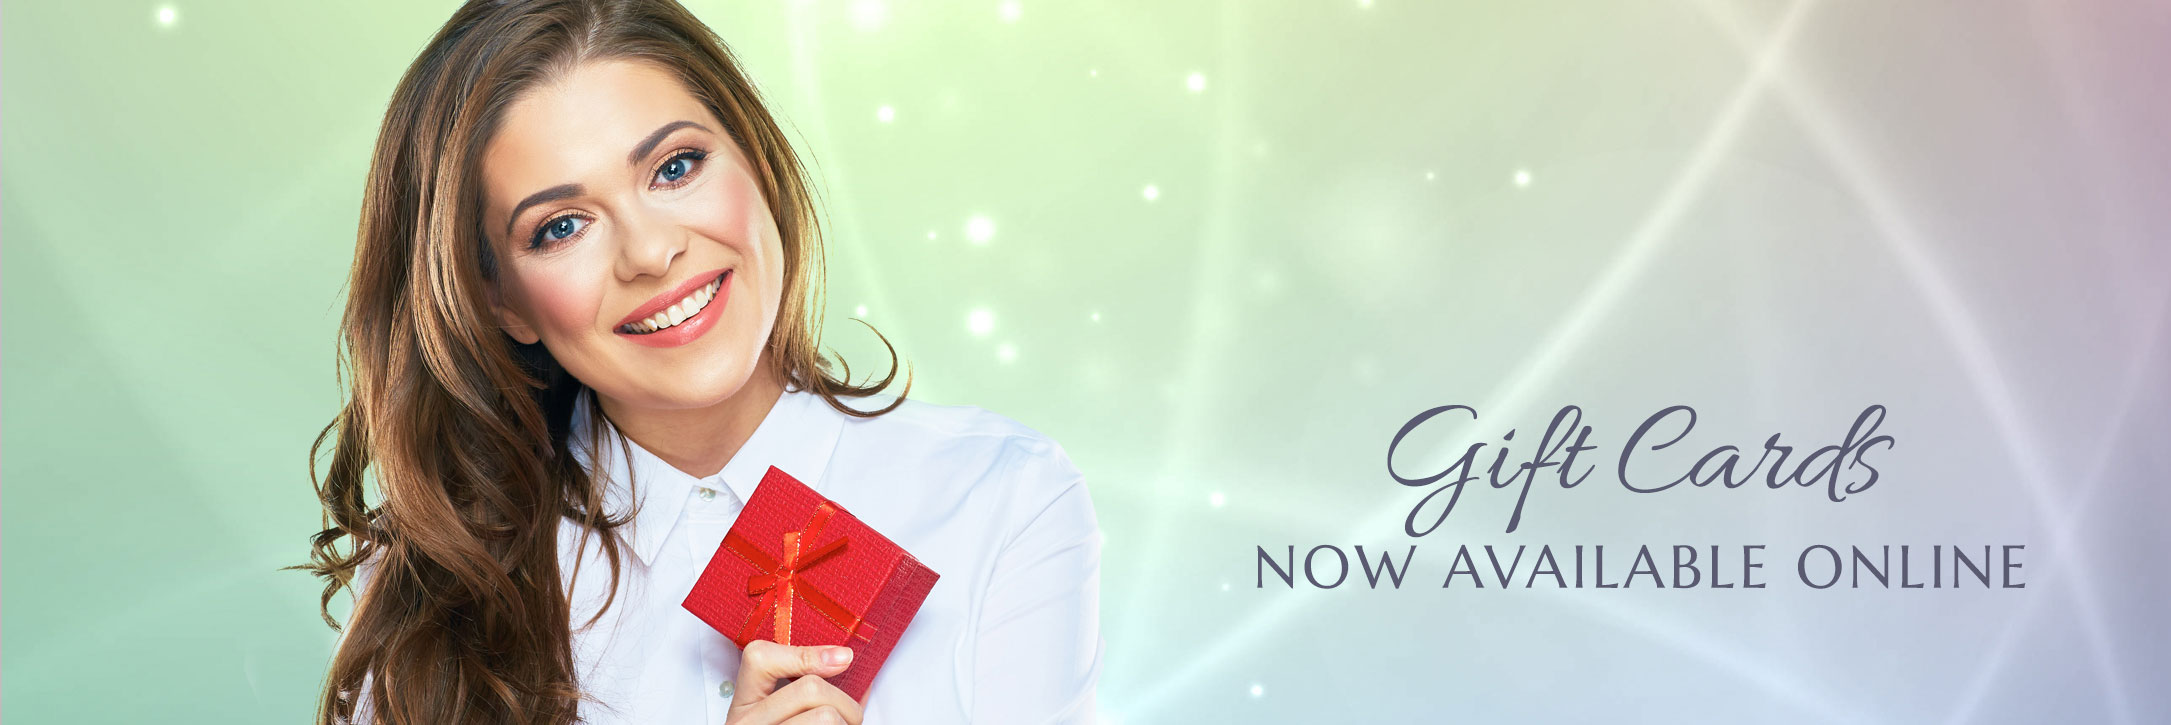 Gift Cards Now Available Online